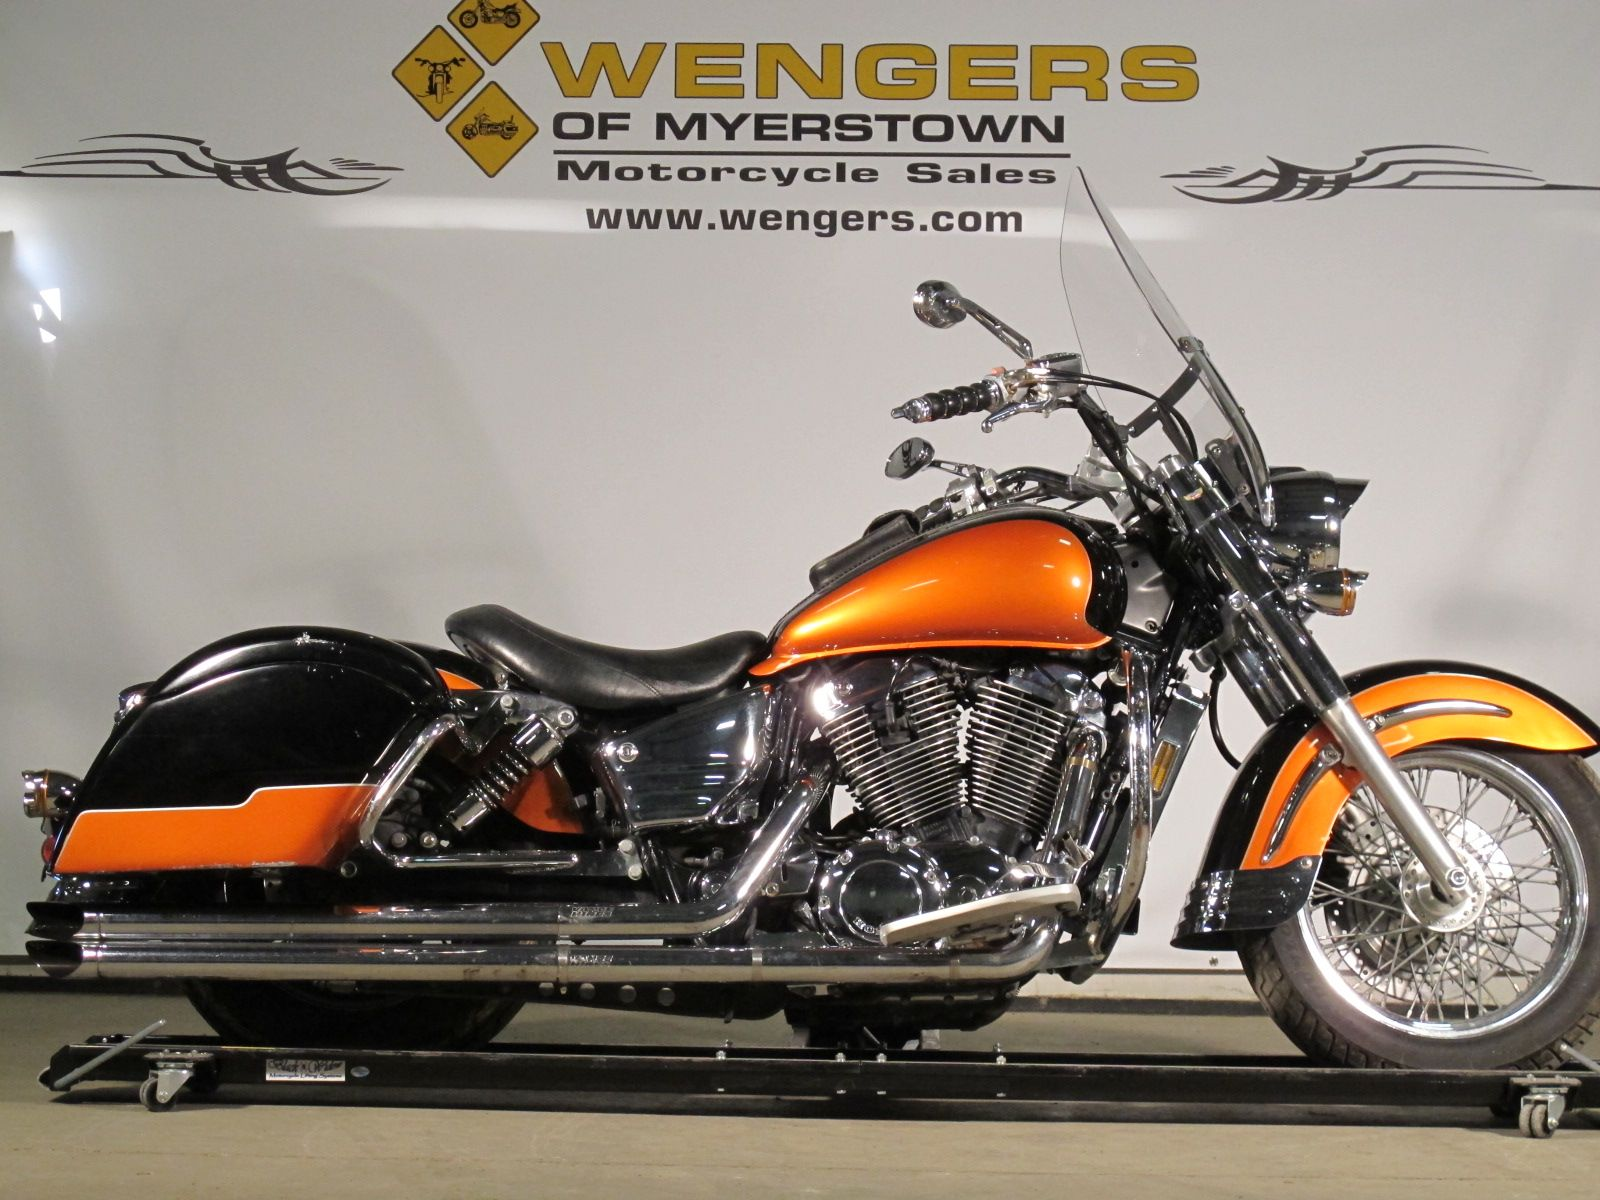 2002 honda shadow aero 1100 for sale at wengers of myerstown motorcycle sales only 4 799 sold [ 1600 x 1200 Pixel ]